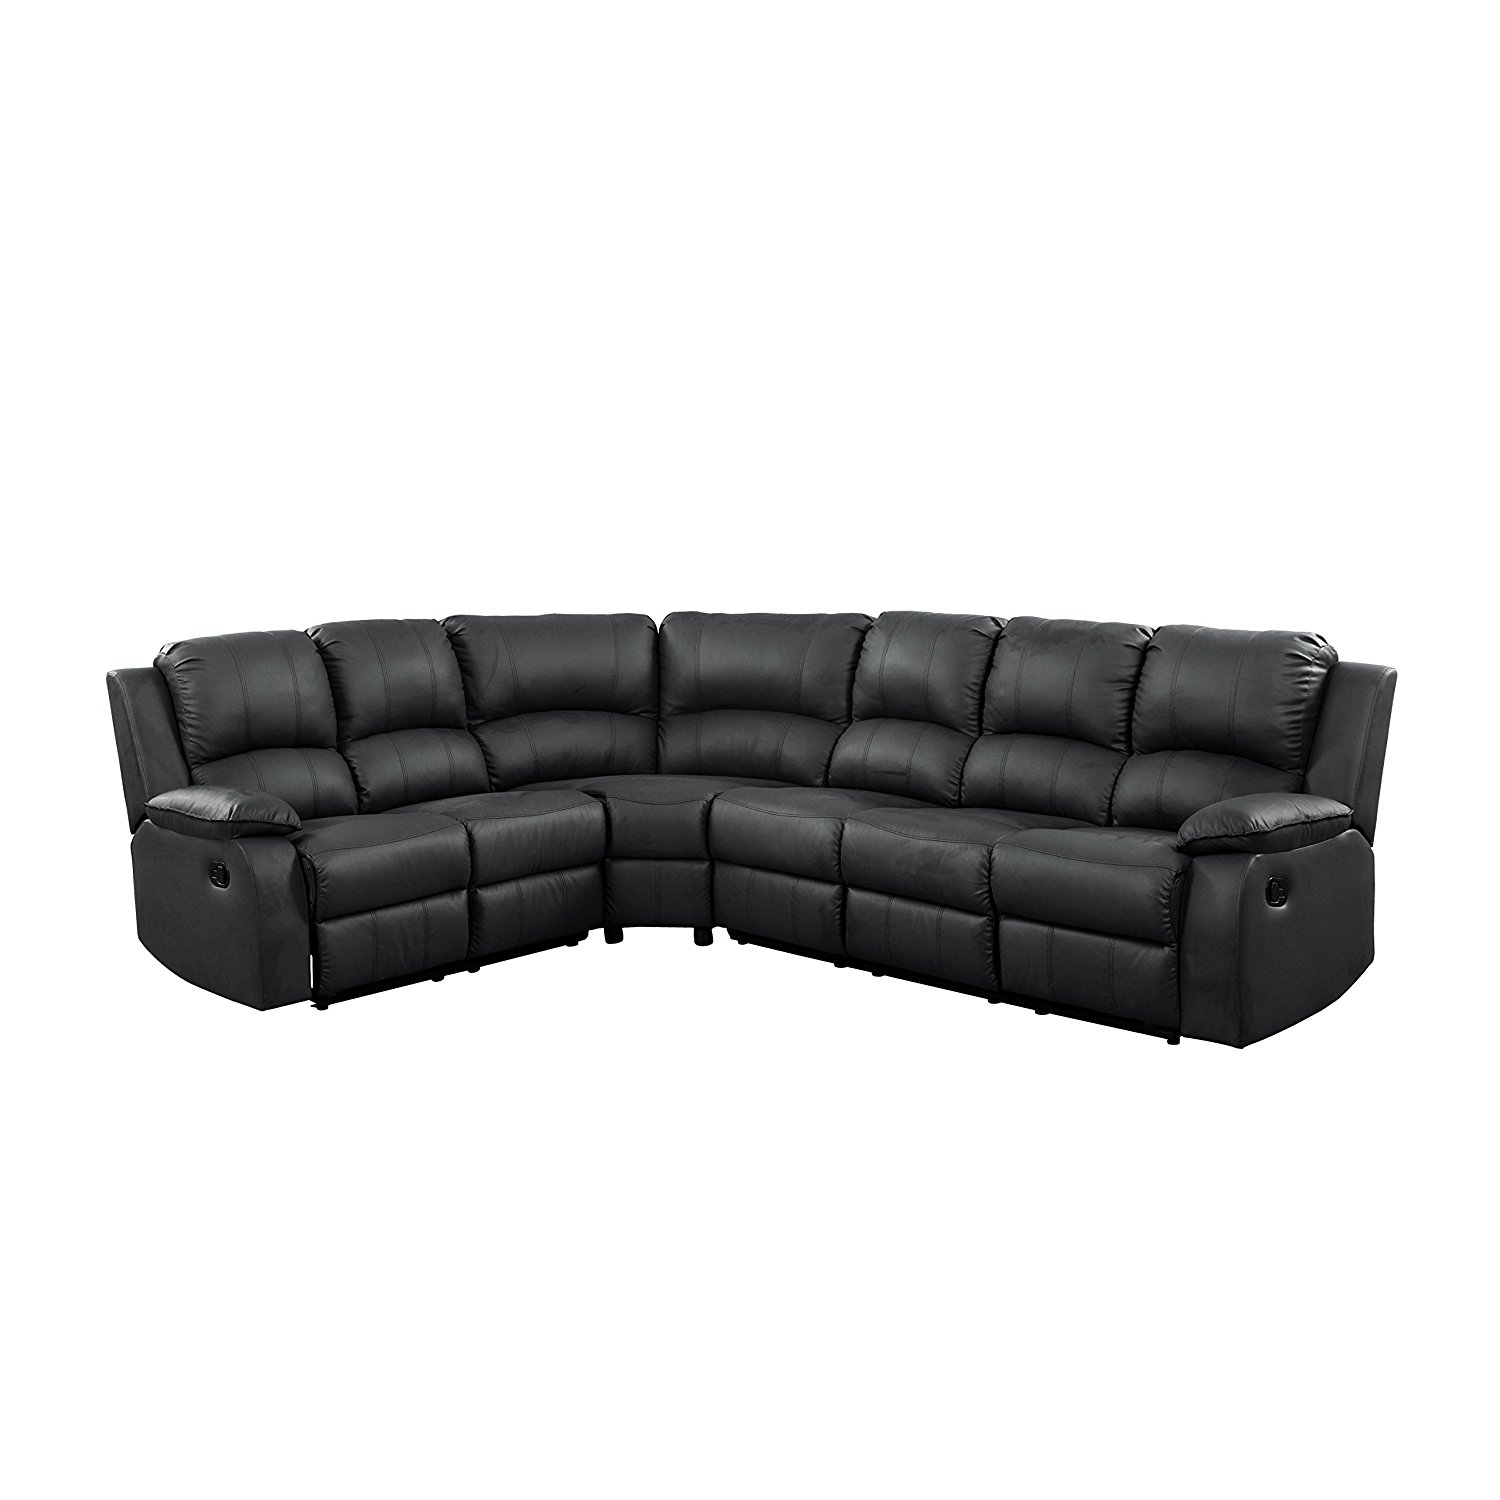 black leather corner sofa recliner madeline by vie boutique extra large reclining sectional for